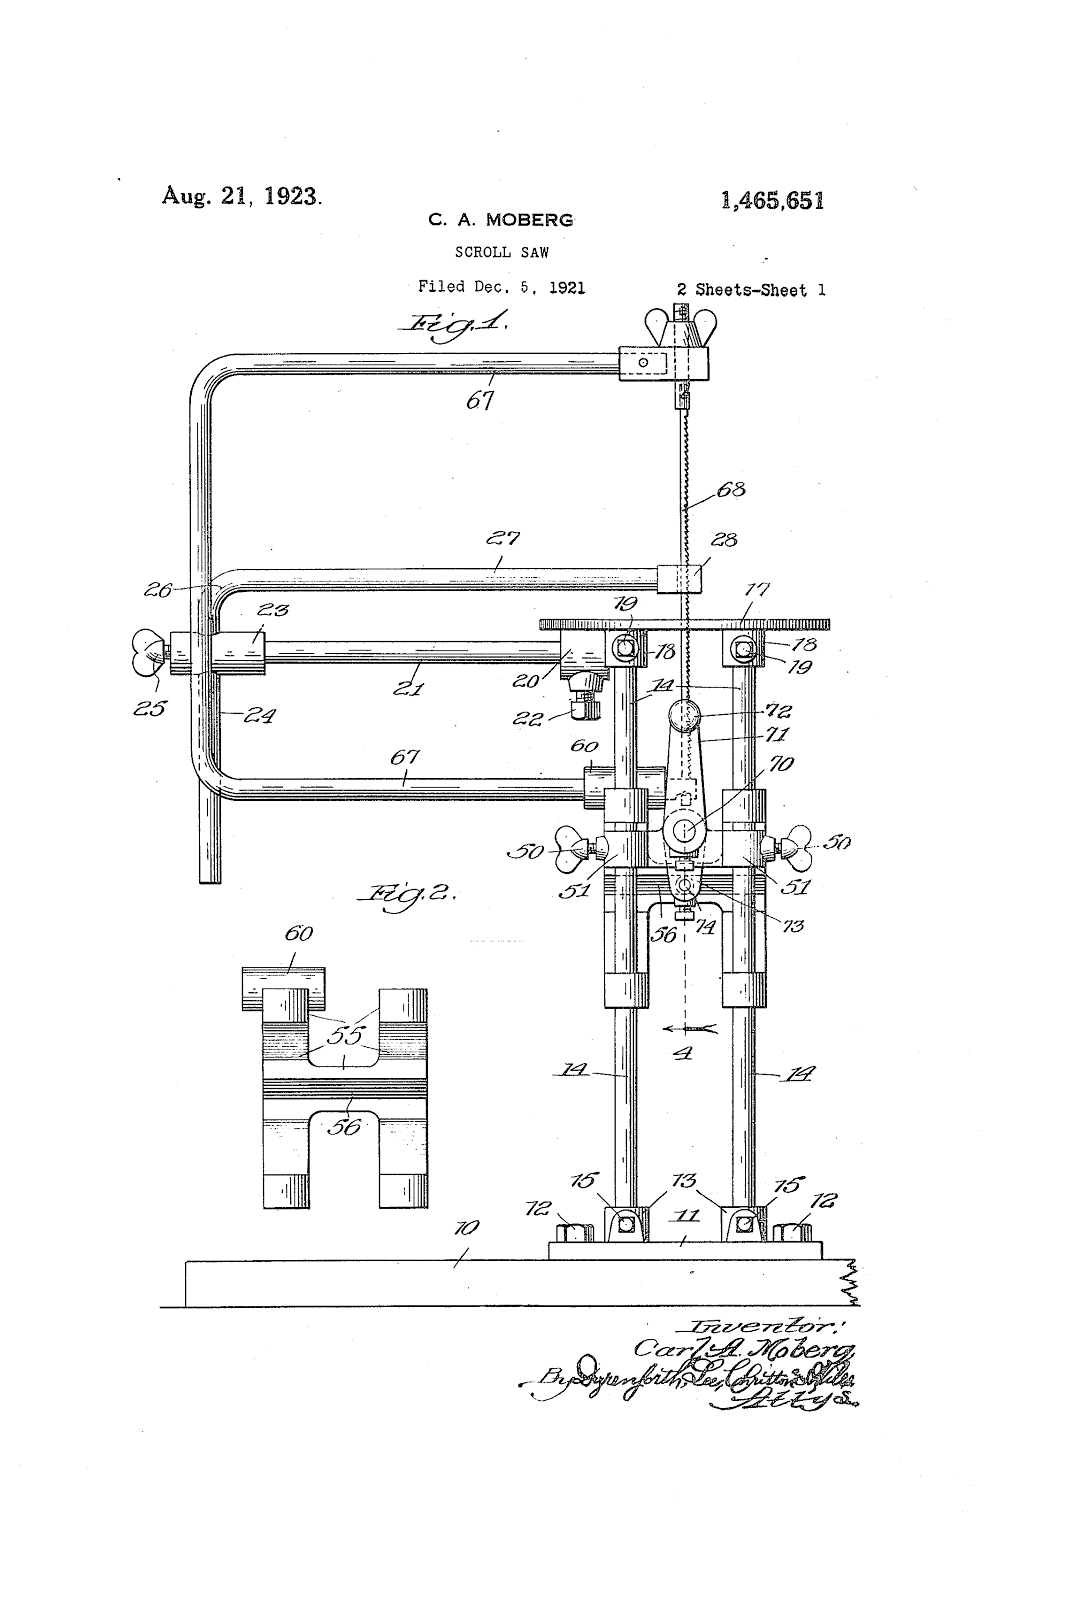 The Valley Woodworker August 2016 Scroll Saw Diagram Our Patent Is No 1465651 Issued To A Mr Ca Moberg So It Was Not Invented By Tautz After All But Manufactured His Company Delta Specialty Co